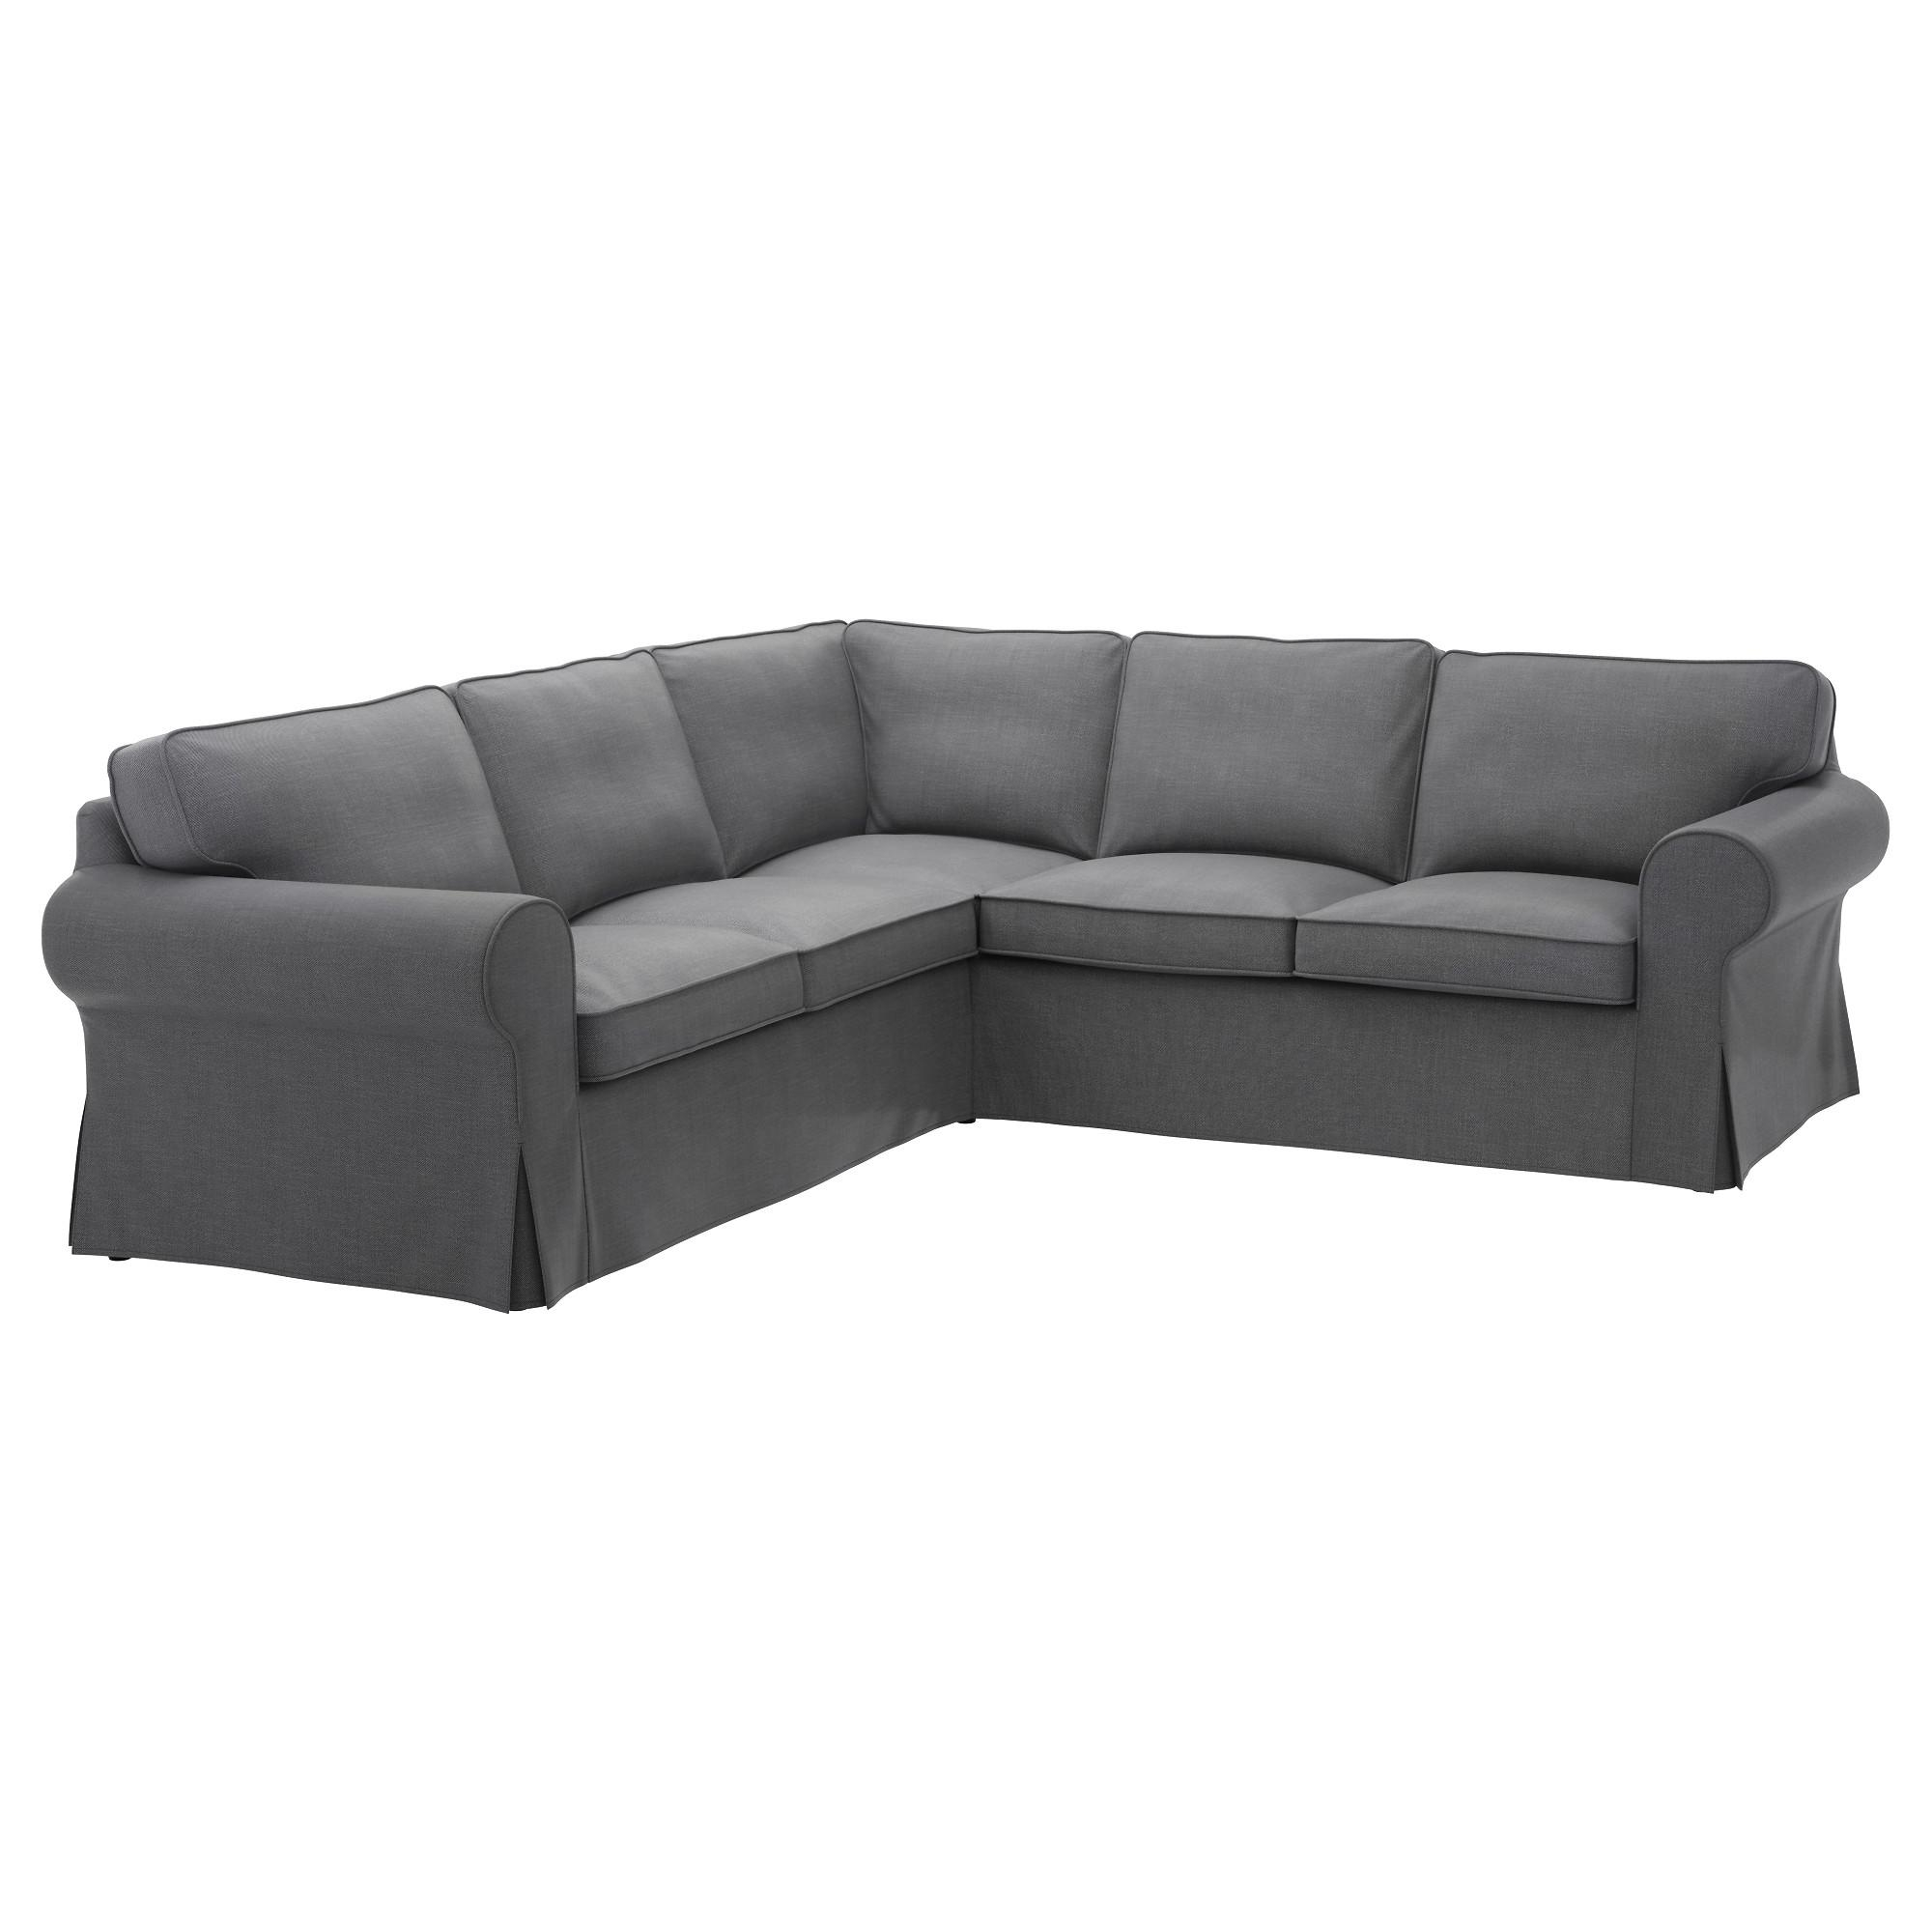 Ektorp Sectional, 4 Seat Corner – Lofallet Beige – Ikea For 2 Seat Sectional Sofas (View 8 of 15)